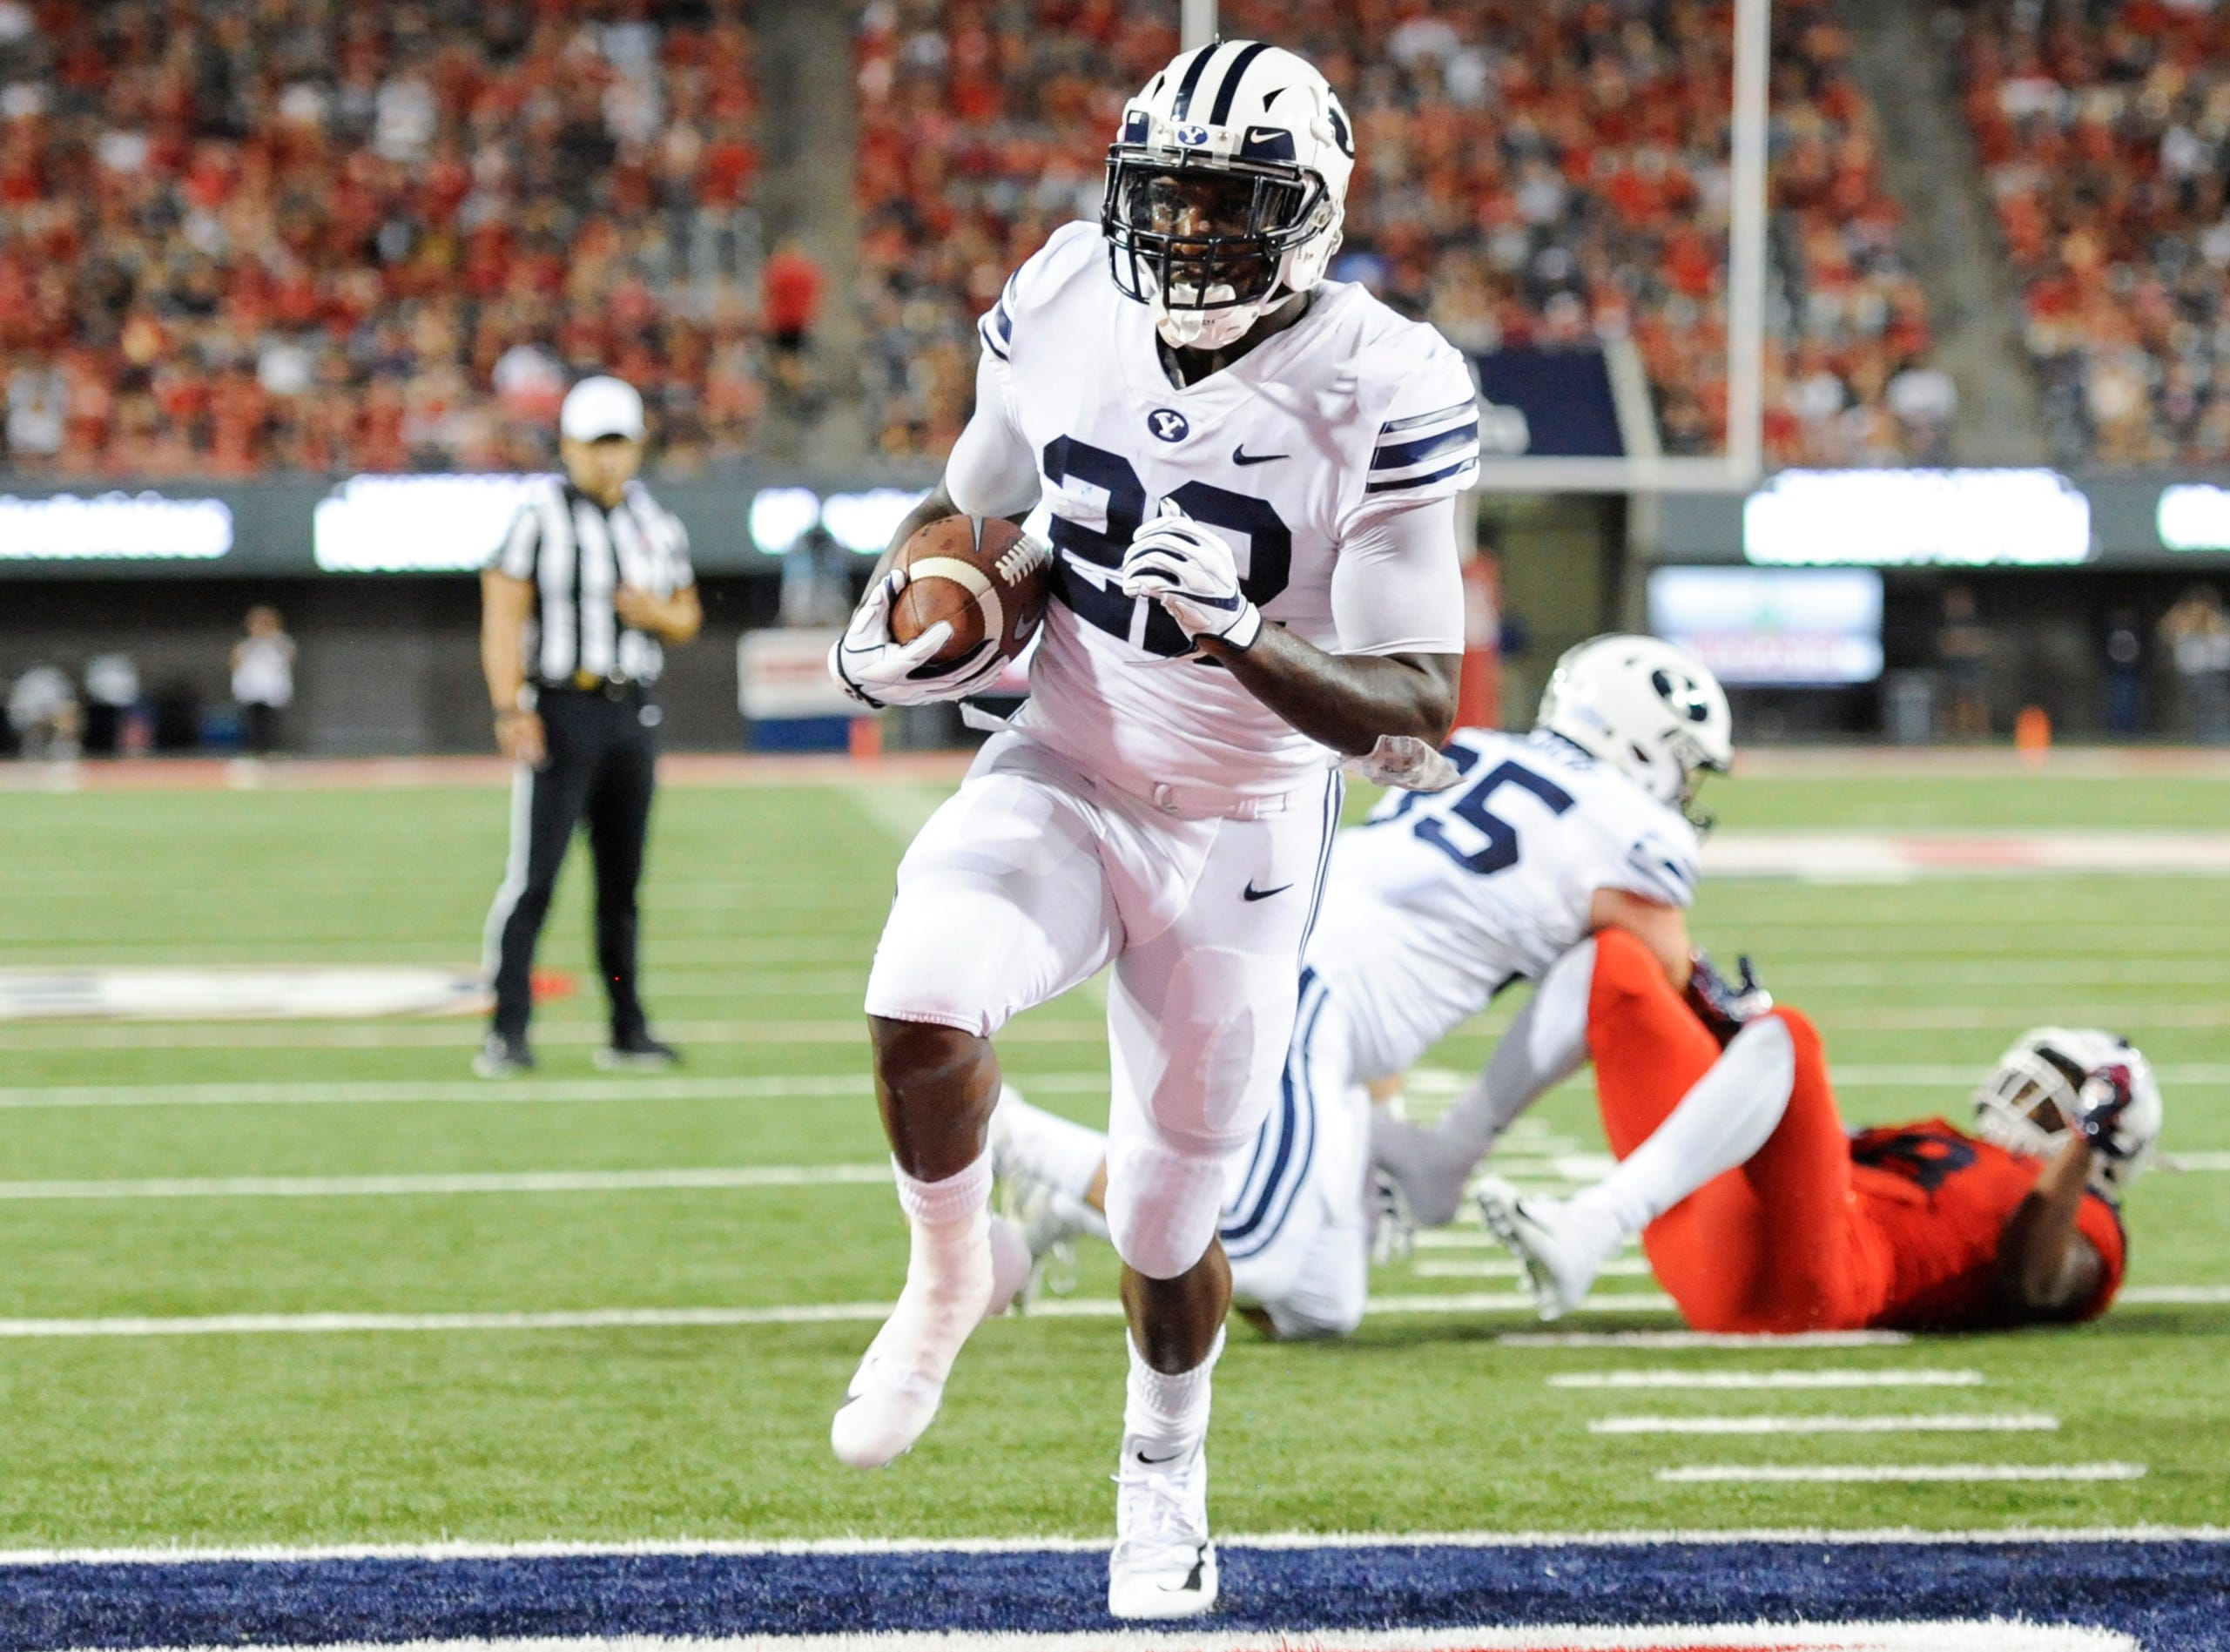 Sep 1, 2018; Tucson, AZ, USA; Brigham Young Cougars running back Squally Canada (22) runs the ball for a touchdown againt the Arizona Wildcats during the first half at Arizona Stadium.